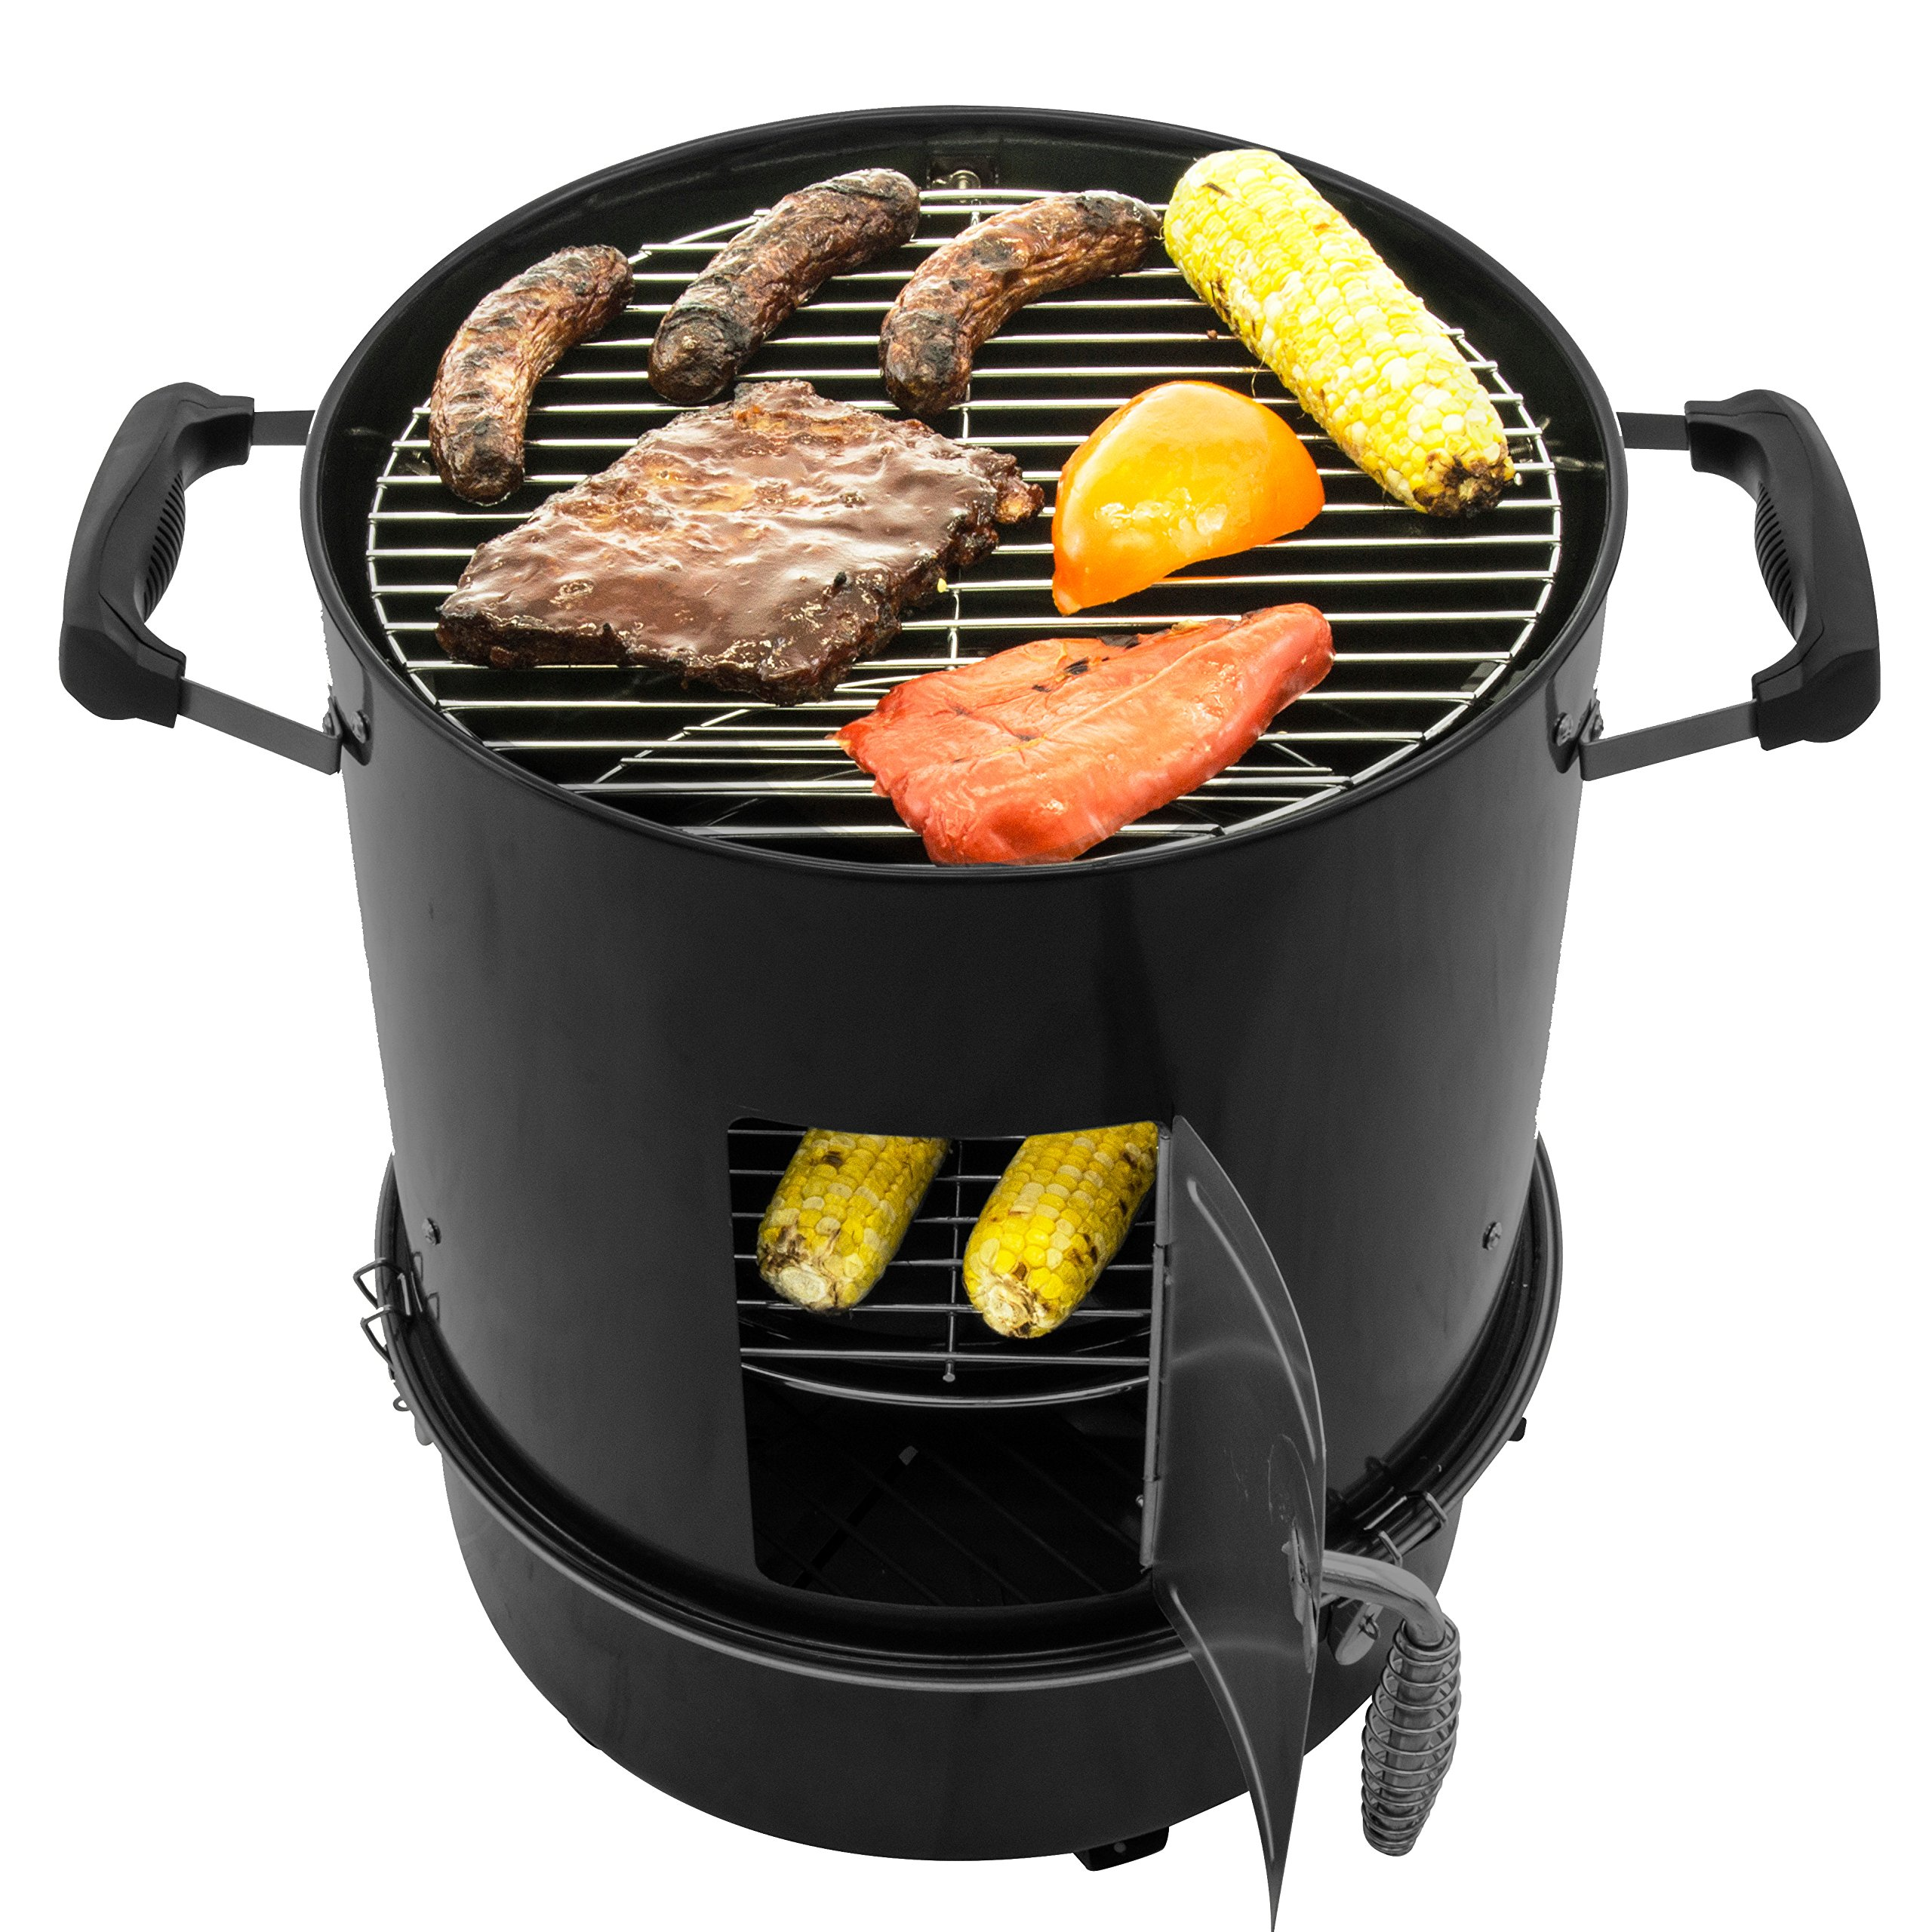 Dyna-Glo DGX376BCS-D  Compact Charcoal Bullet Smoker - High Gloss Black by Dyna-Glo (Image #4)